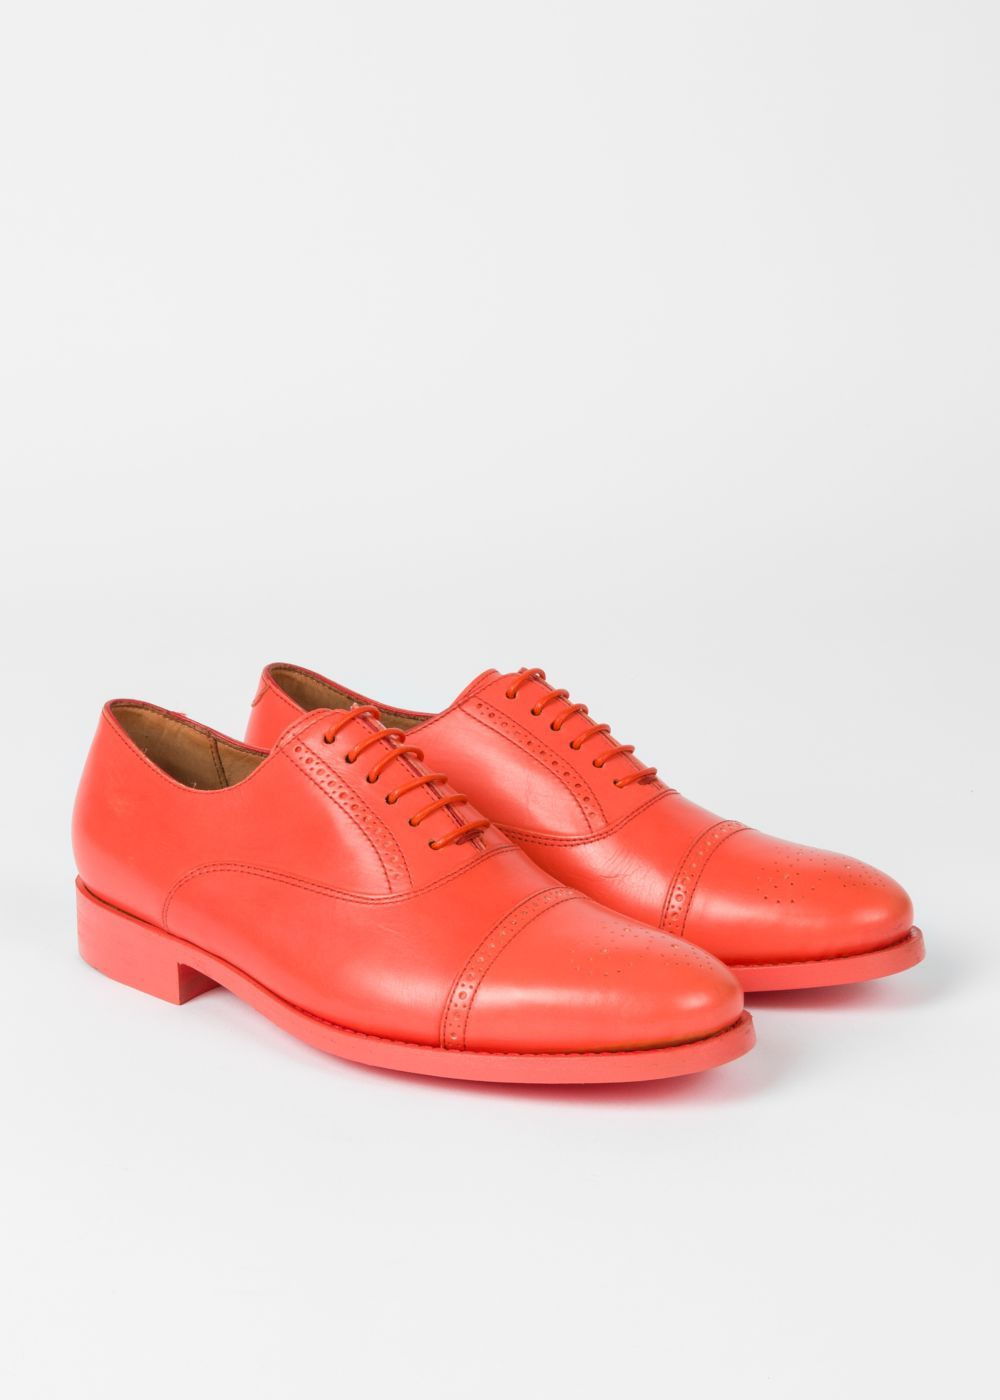 paul smith shoes online